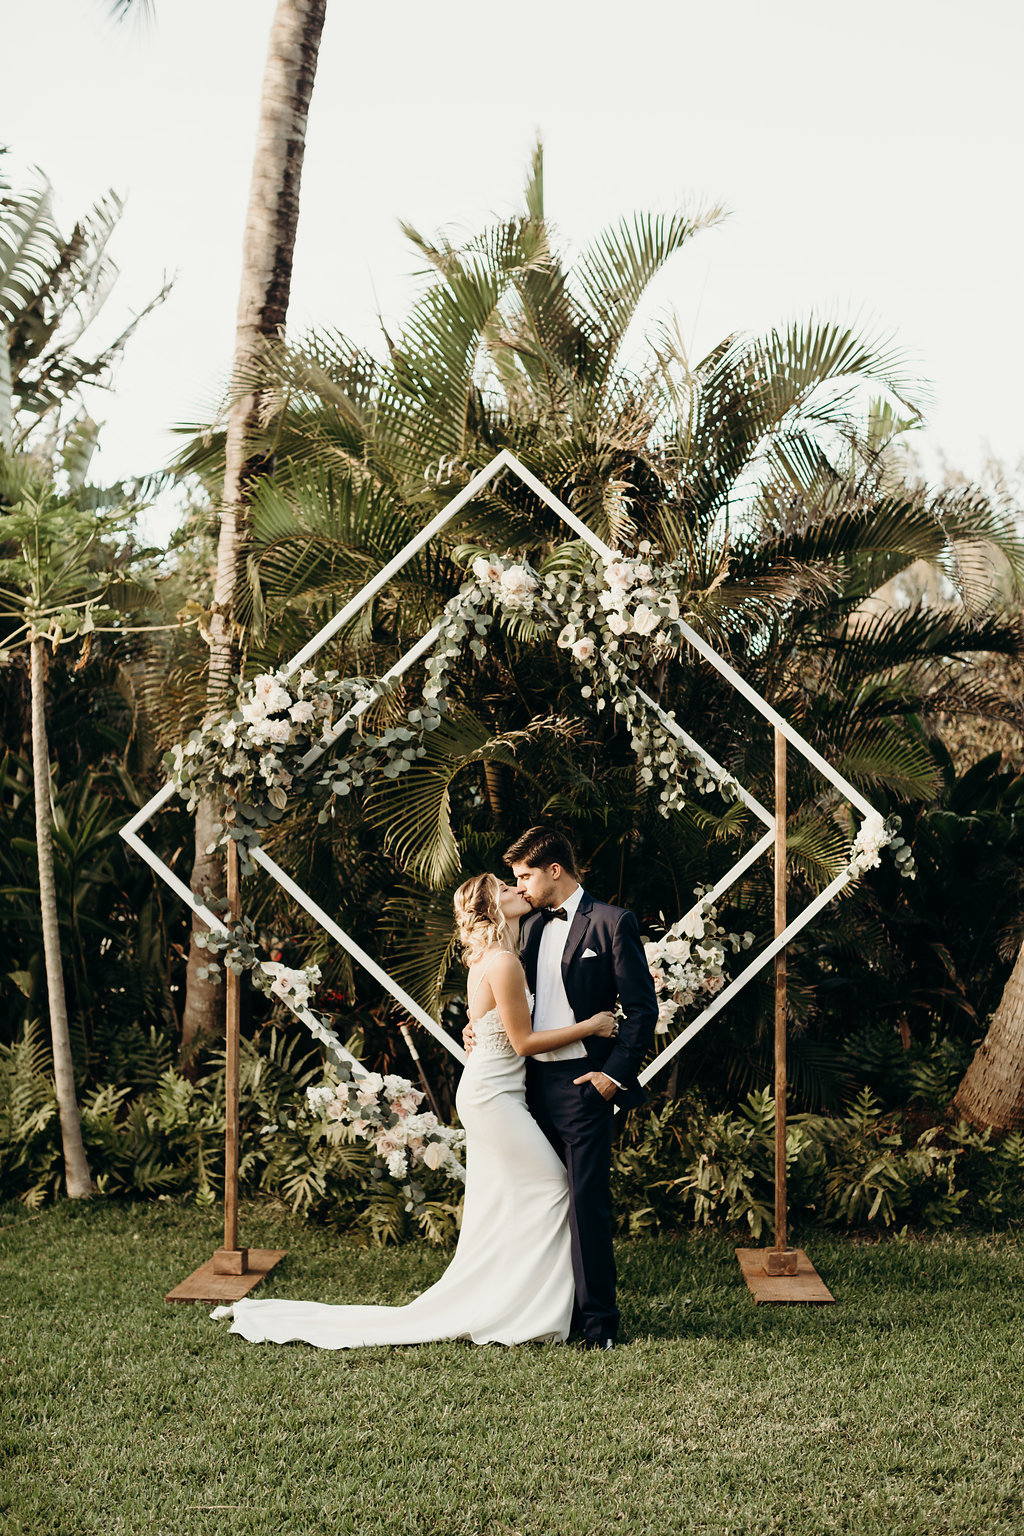 Classic Elopement Package